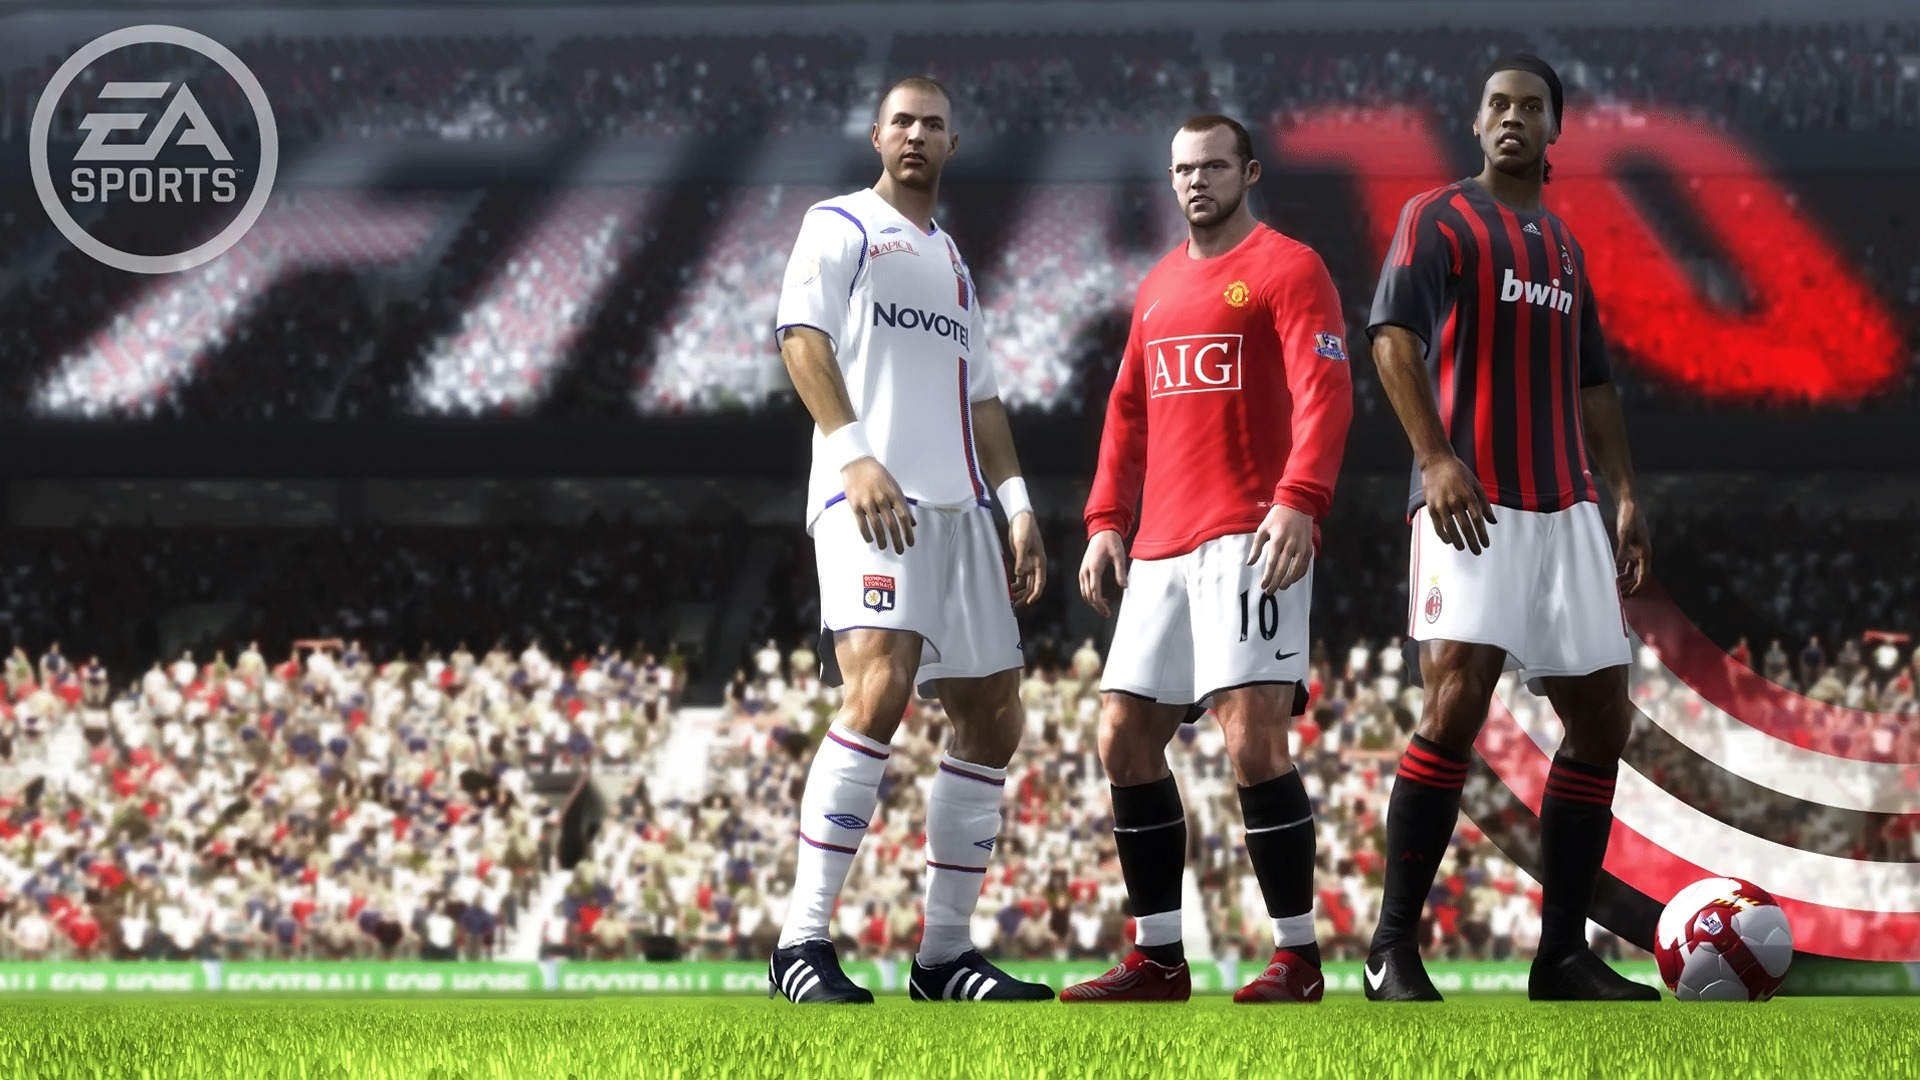 Fifa 10 wallpaper fifa games wallpapers in jpg format for free fifa 10 wallpaper fifa games wallpapers voltagebd Image collections